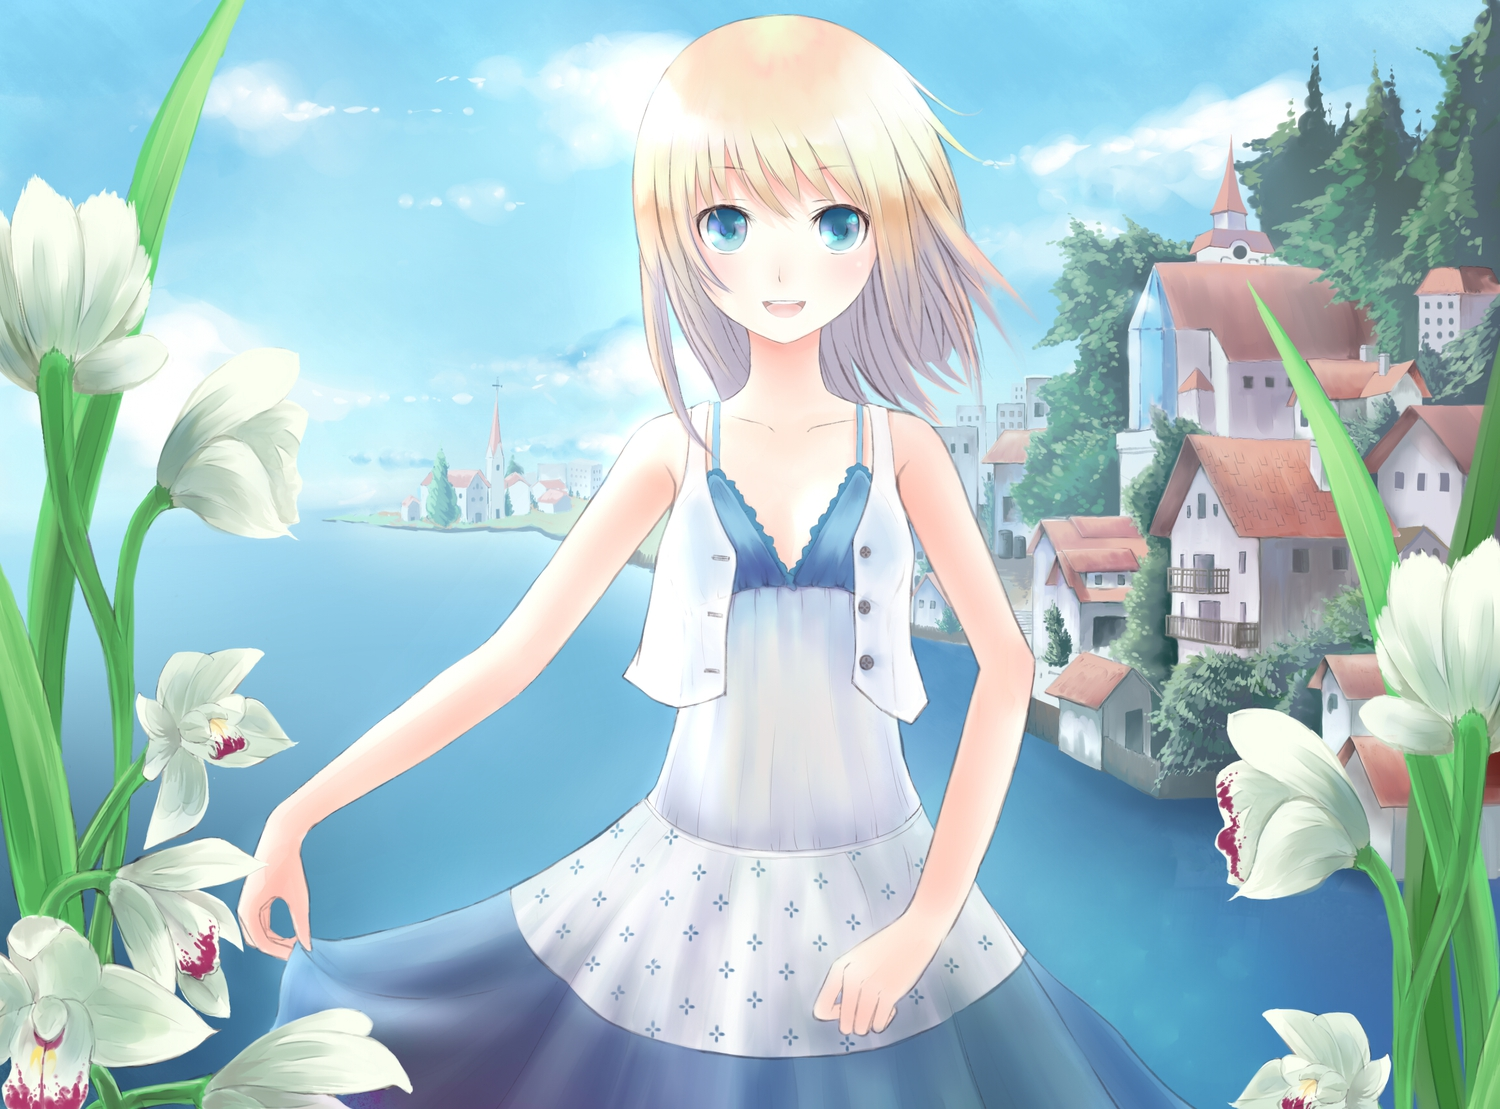 Blonde hair blue eyes building flowers minato shouno original sky tree konachan com konachan com anime wallpapers